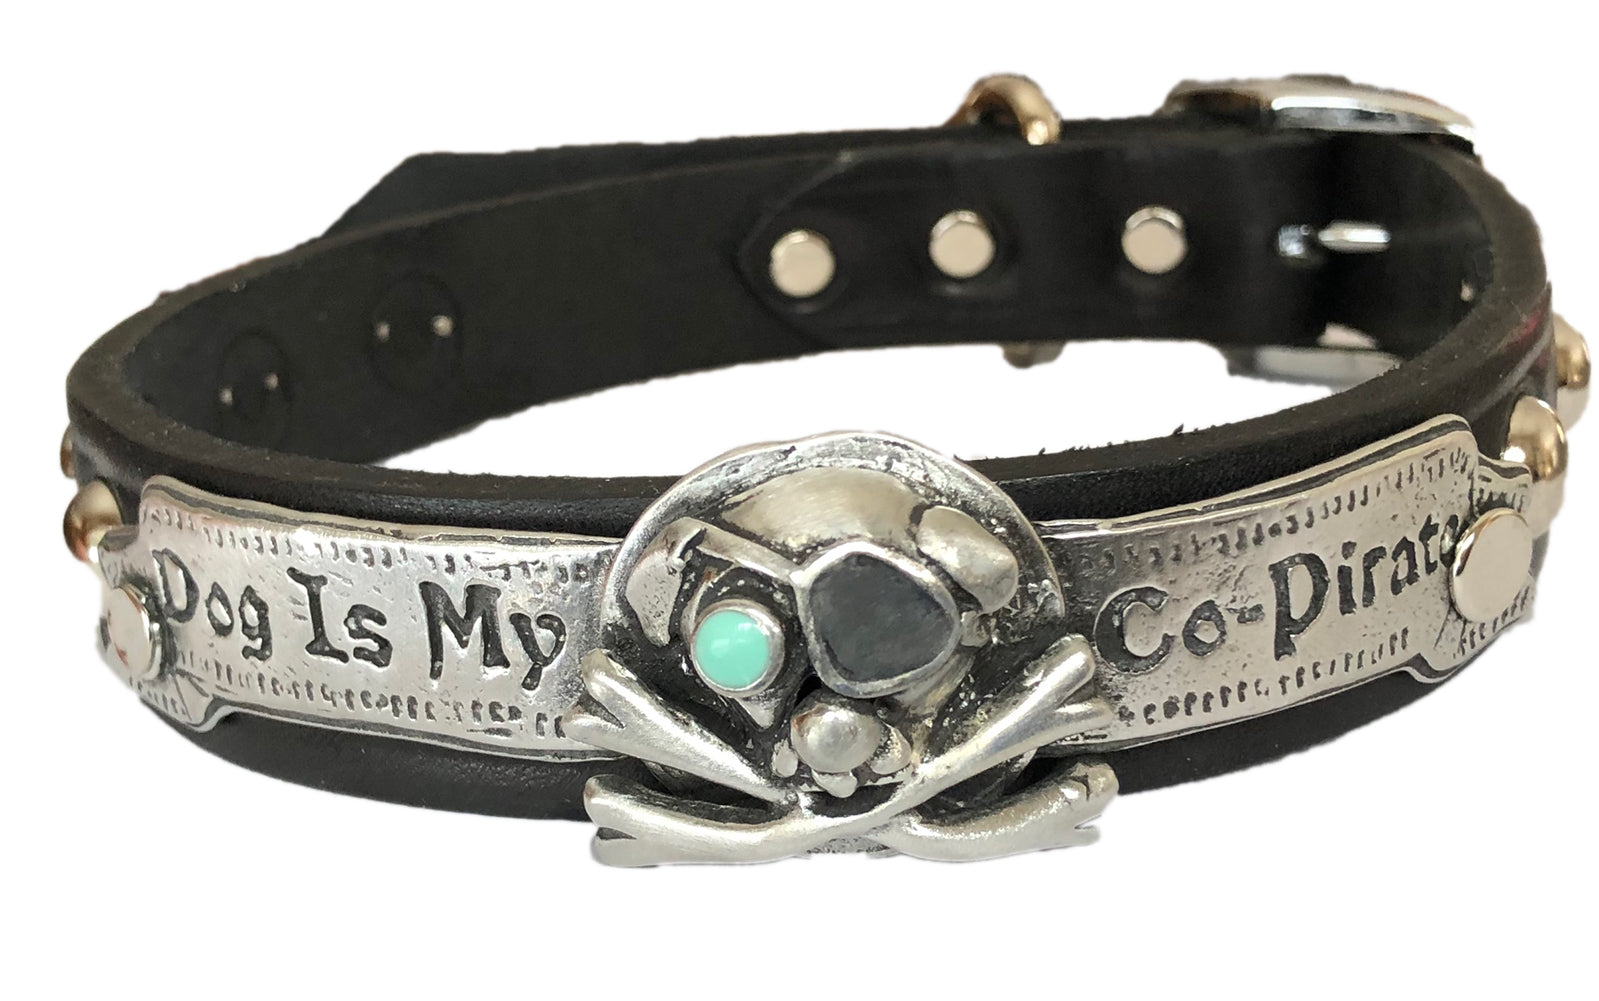 Dog Is My Co-Pirate Dog Collar